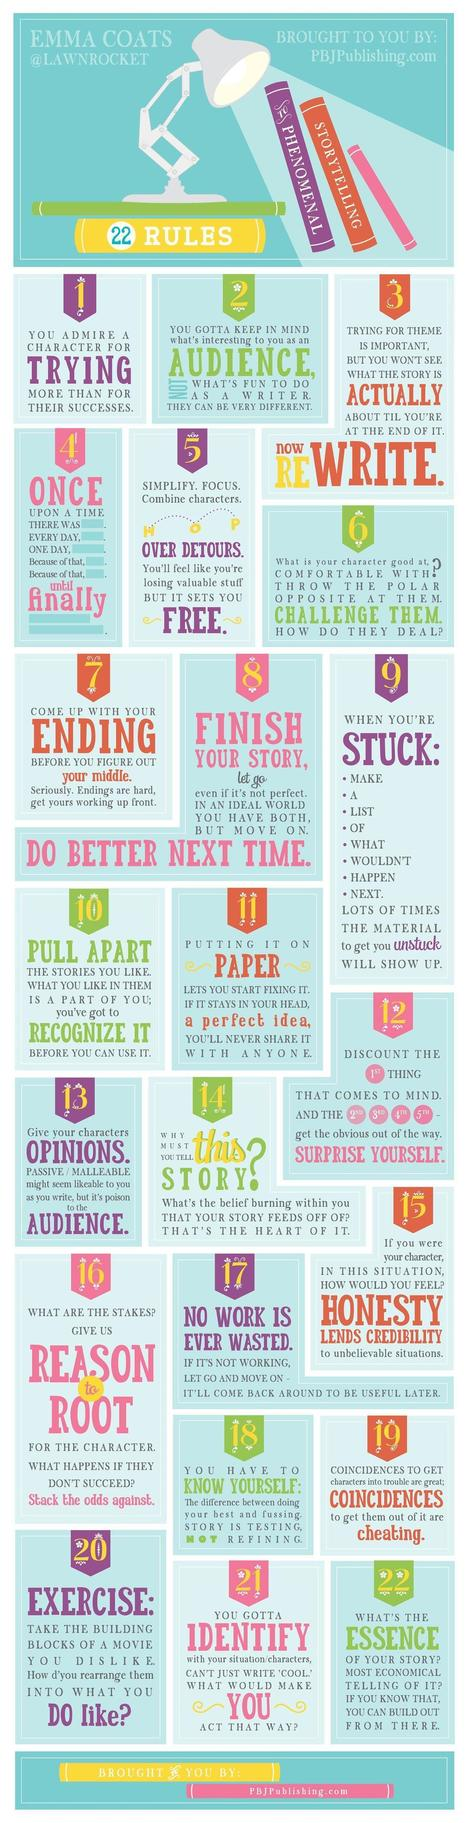 Pixars' 22 rules for storytelling (infographie)   Storytelling   Scoop.it